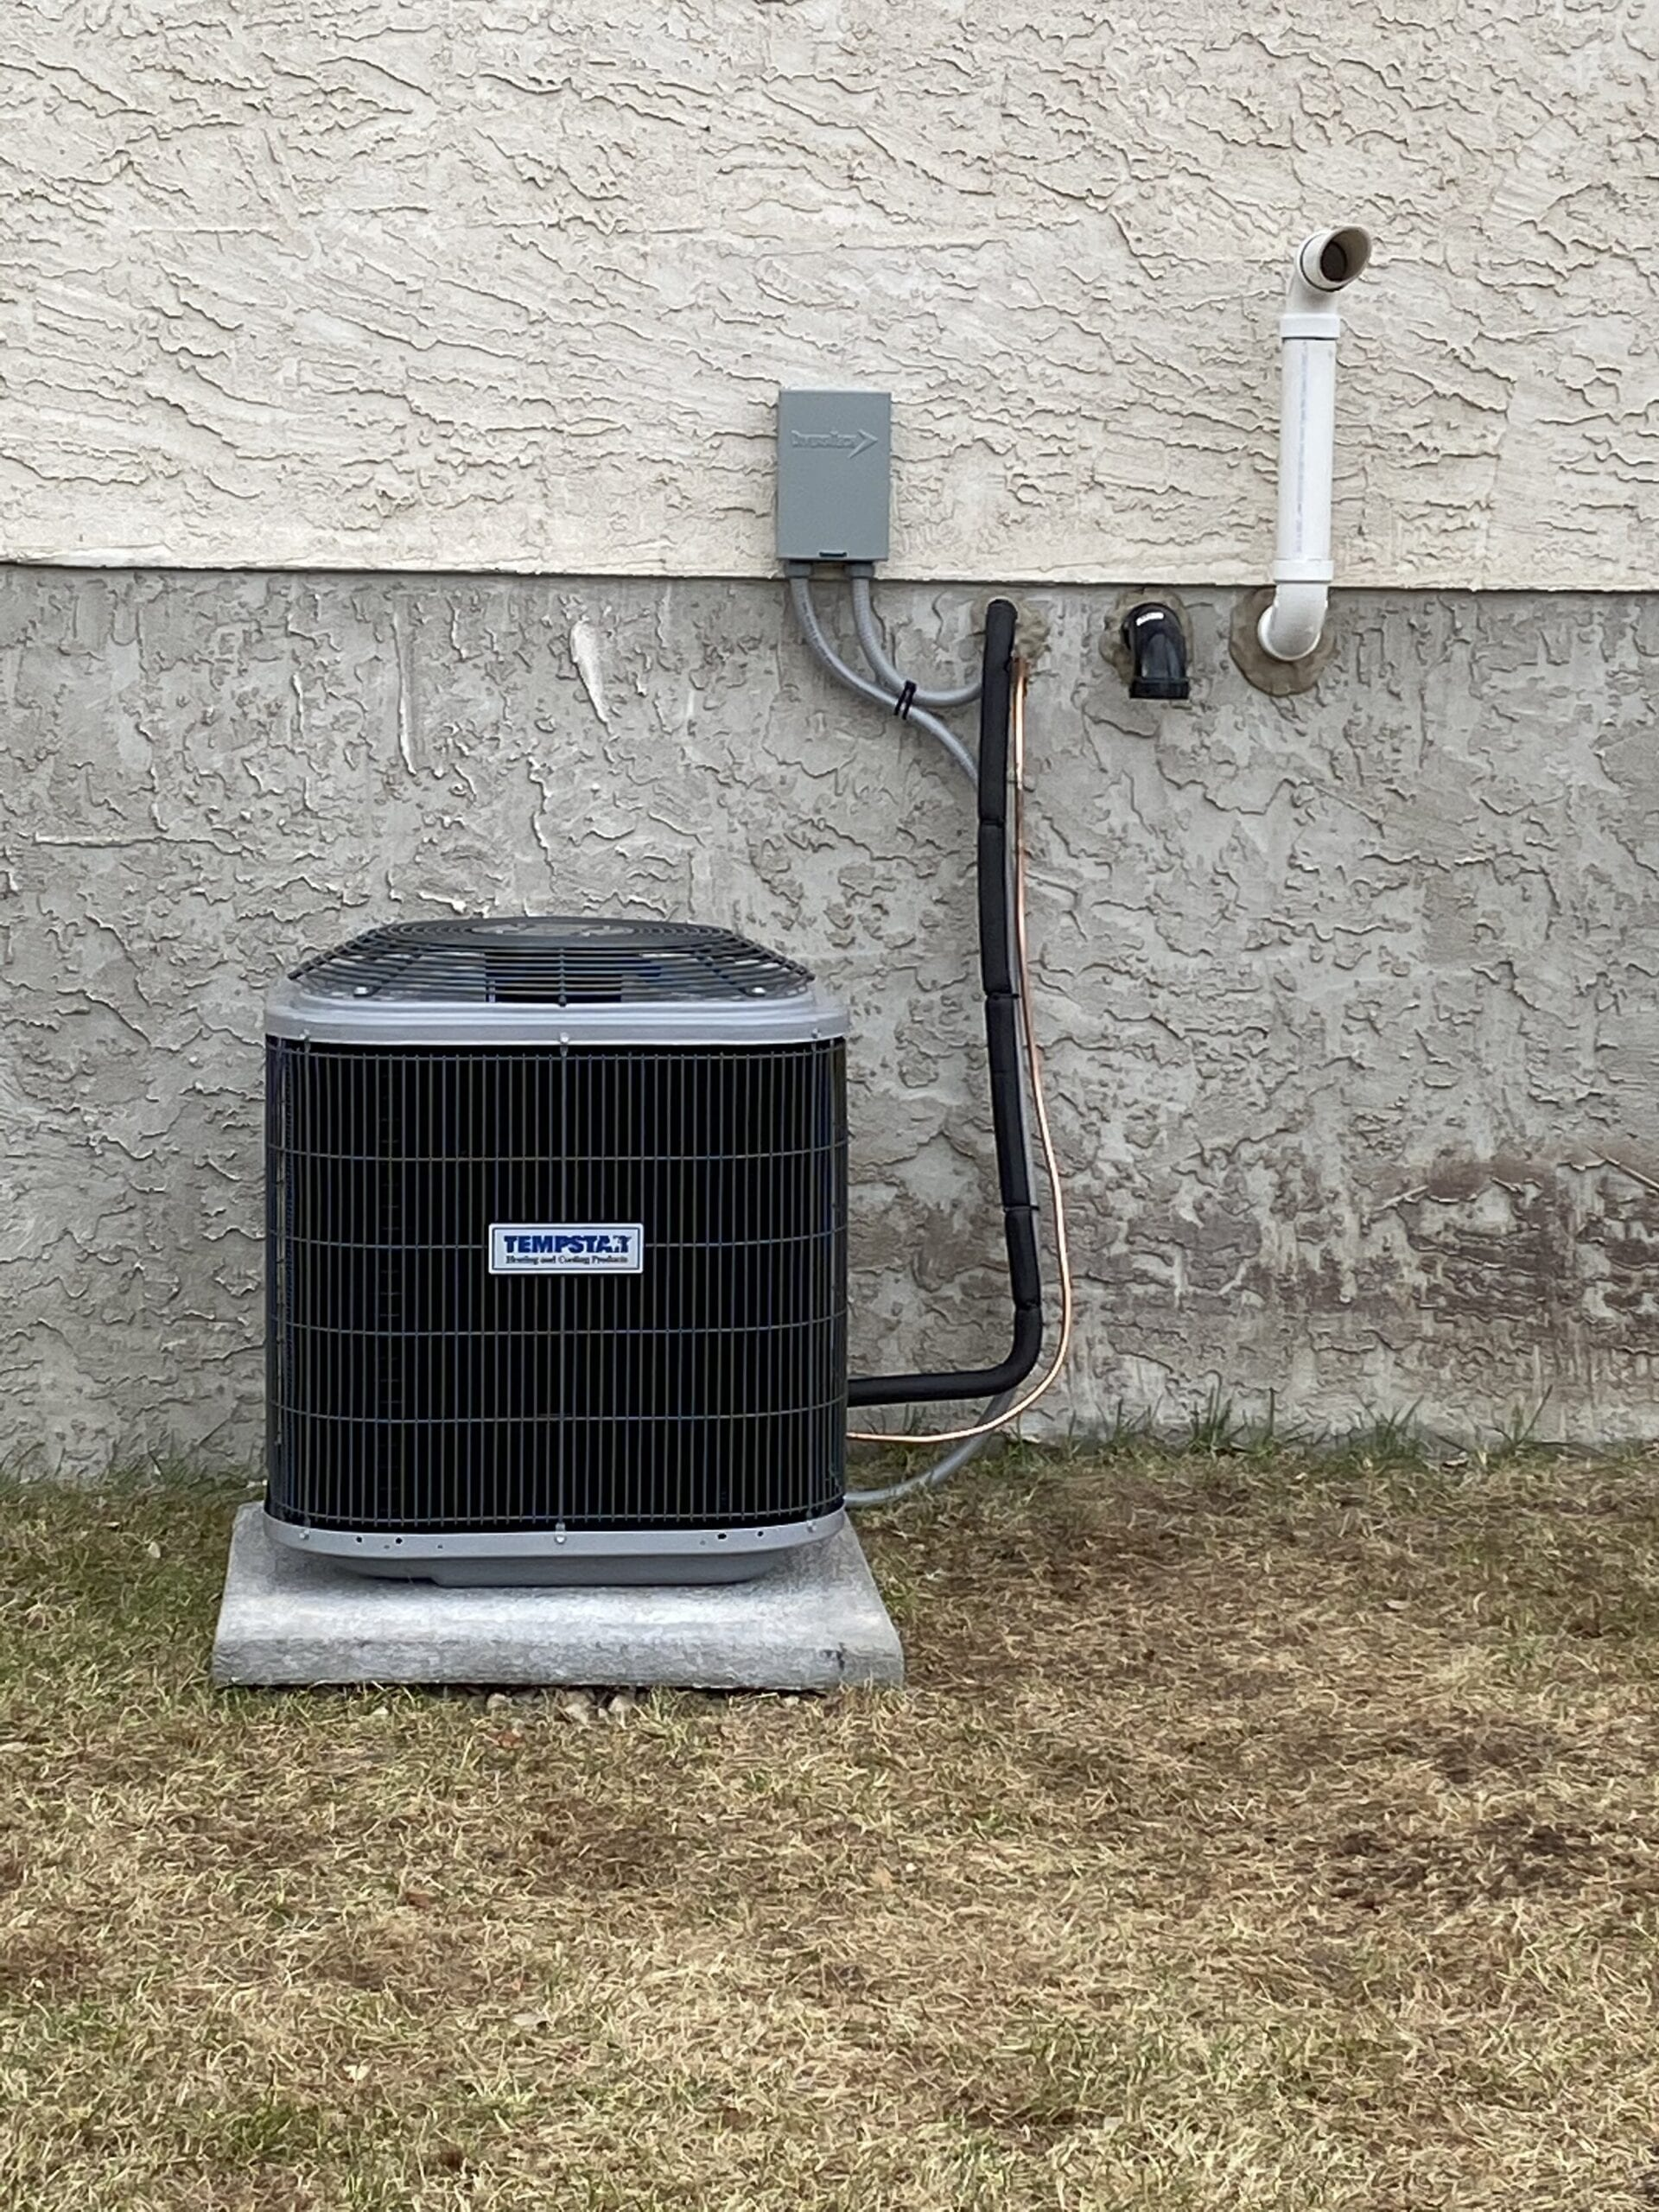 AC in the summer is so important thats why you should count on trusted plumbing and heating for service and sales